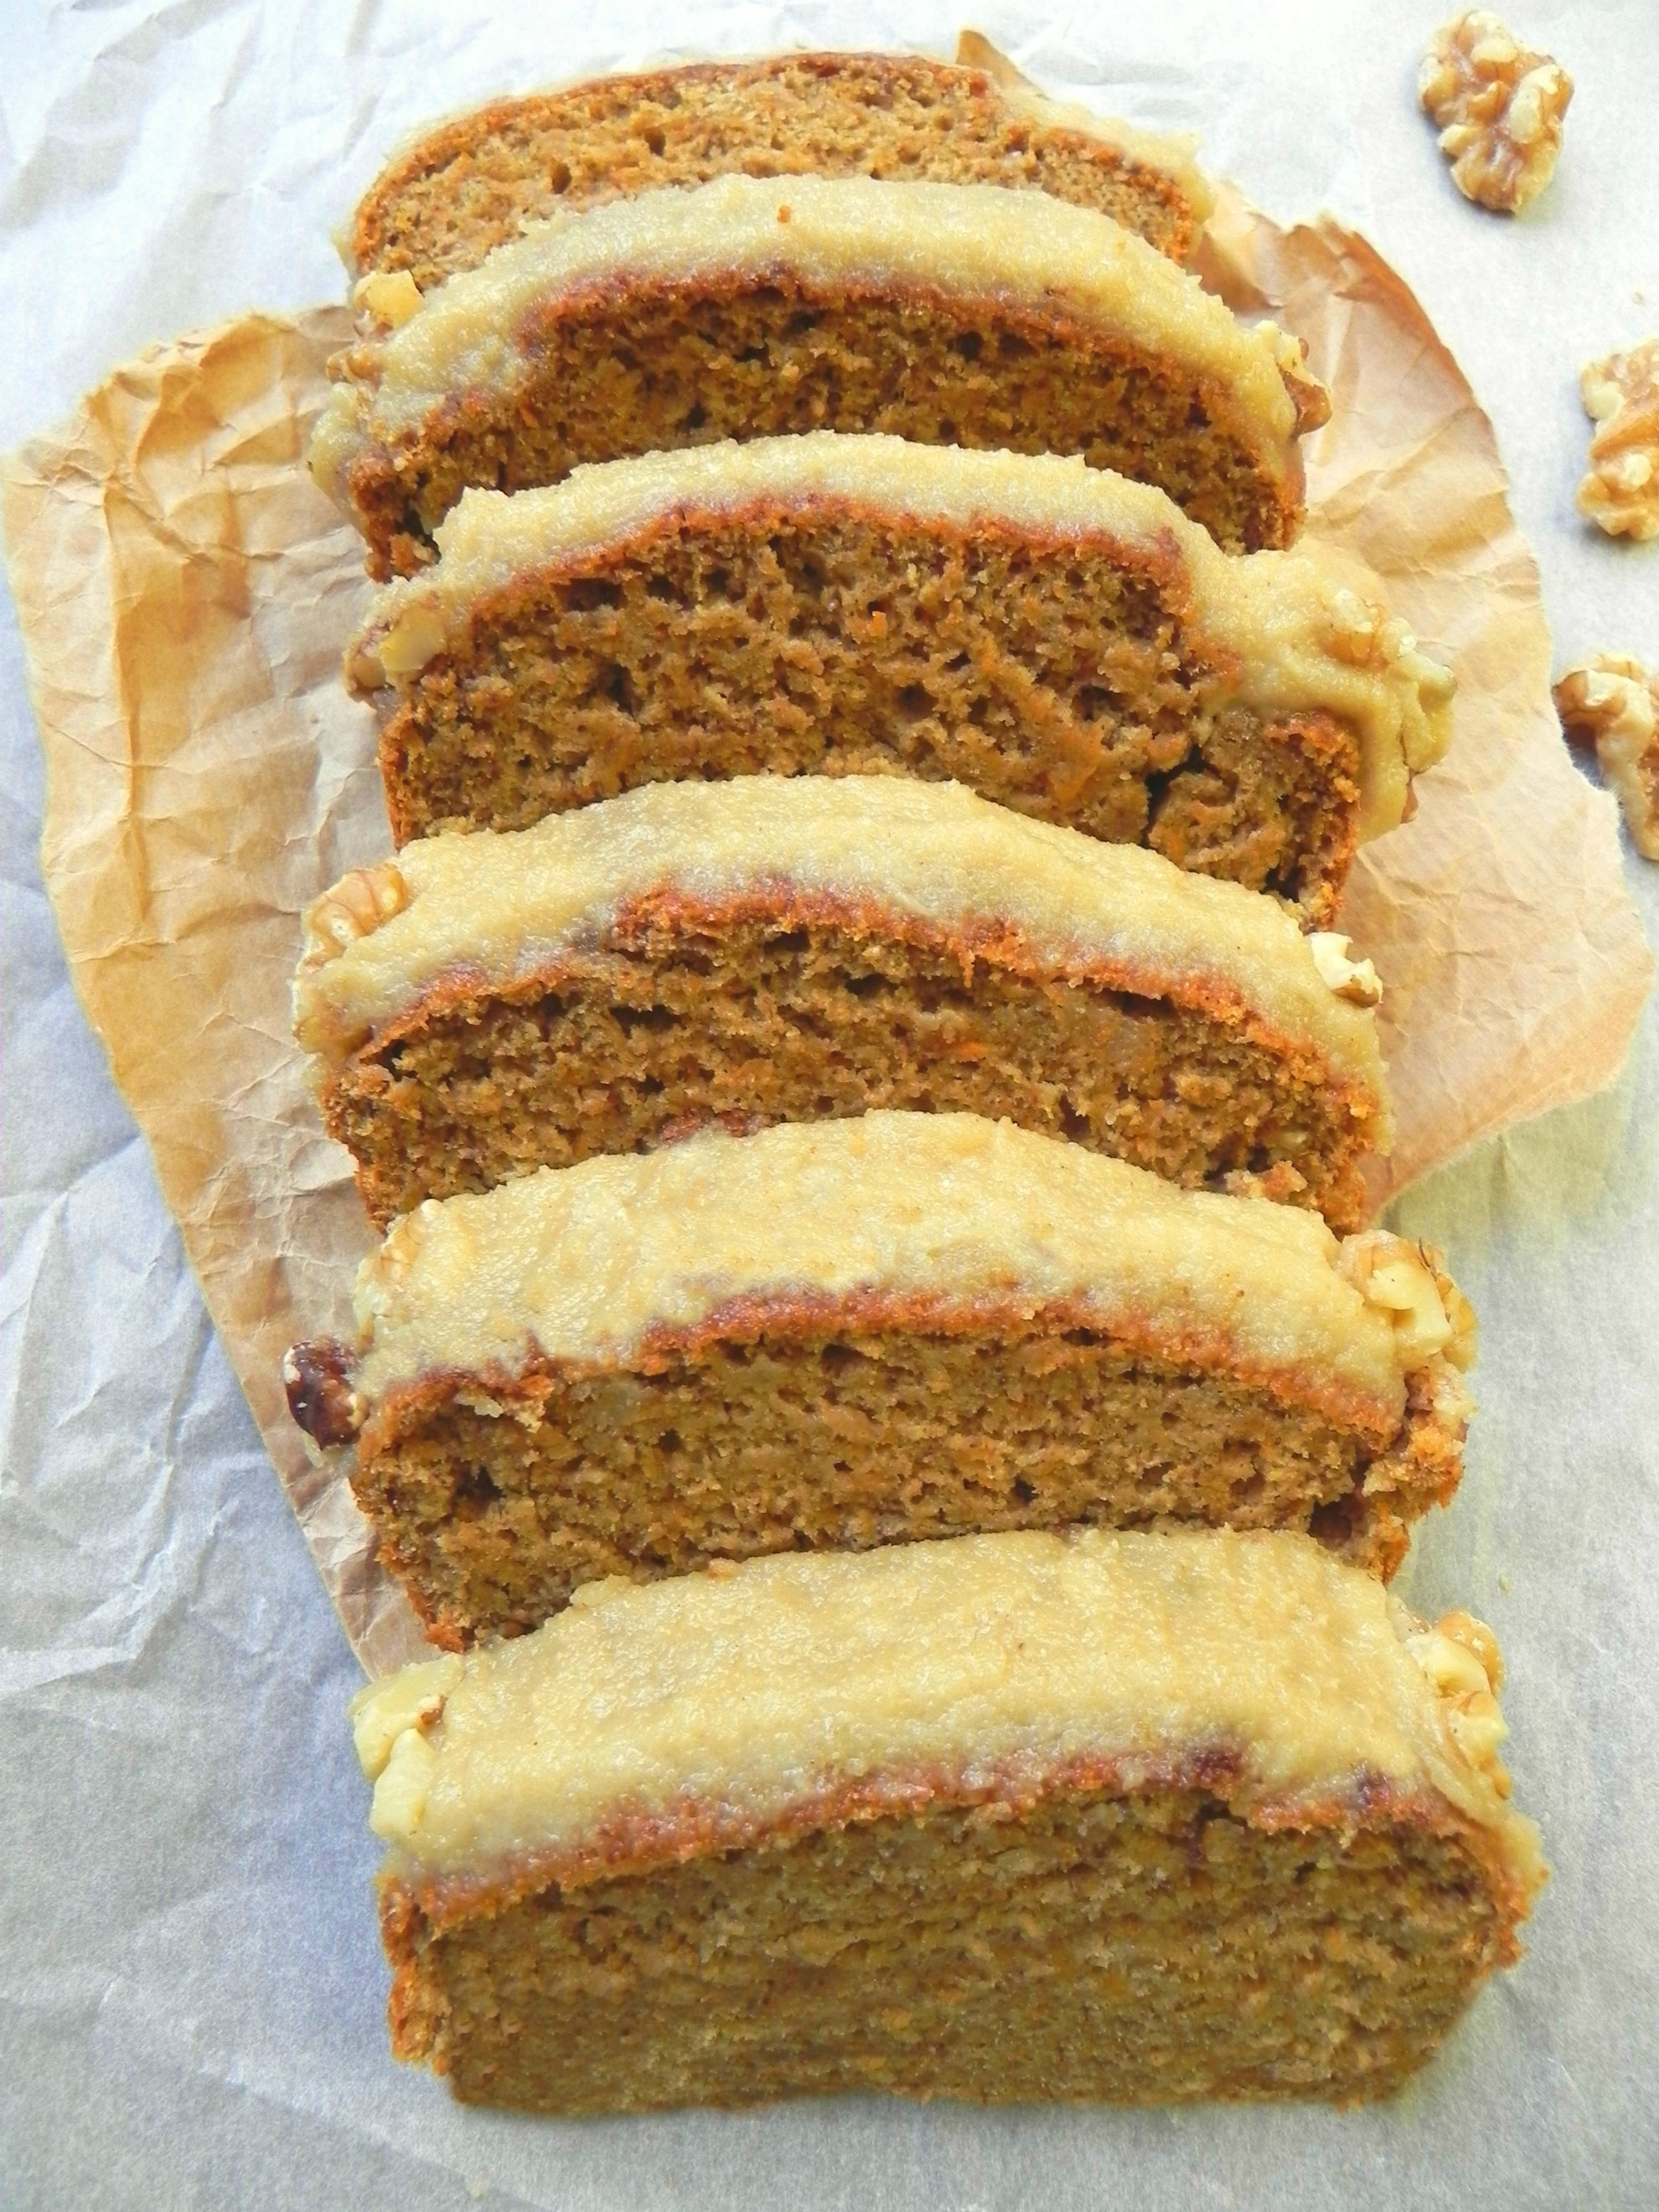 Healthy Vegan Carrot Cake  Healthy Vegan Carrot Cake with Cream Cheese Icing